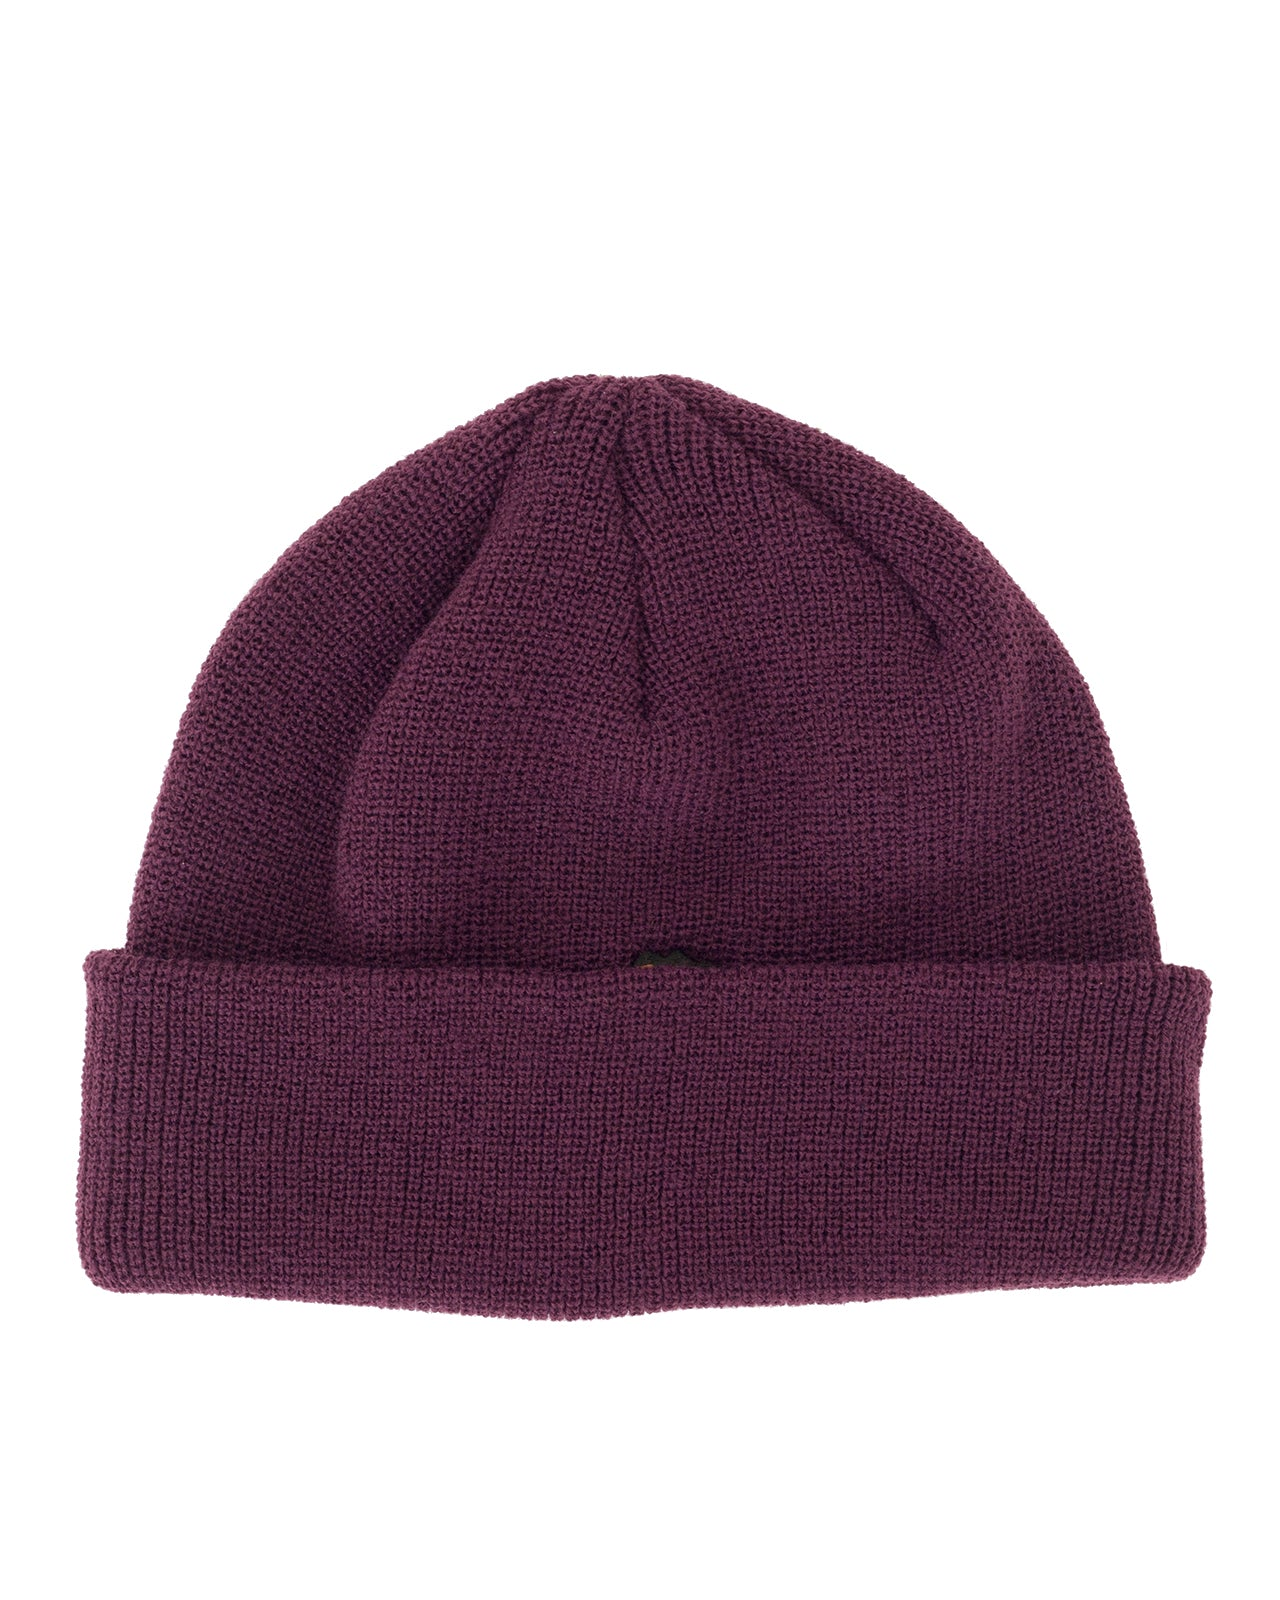 Weirdo Knit Cap, Ringing Tiger, Burgundy